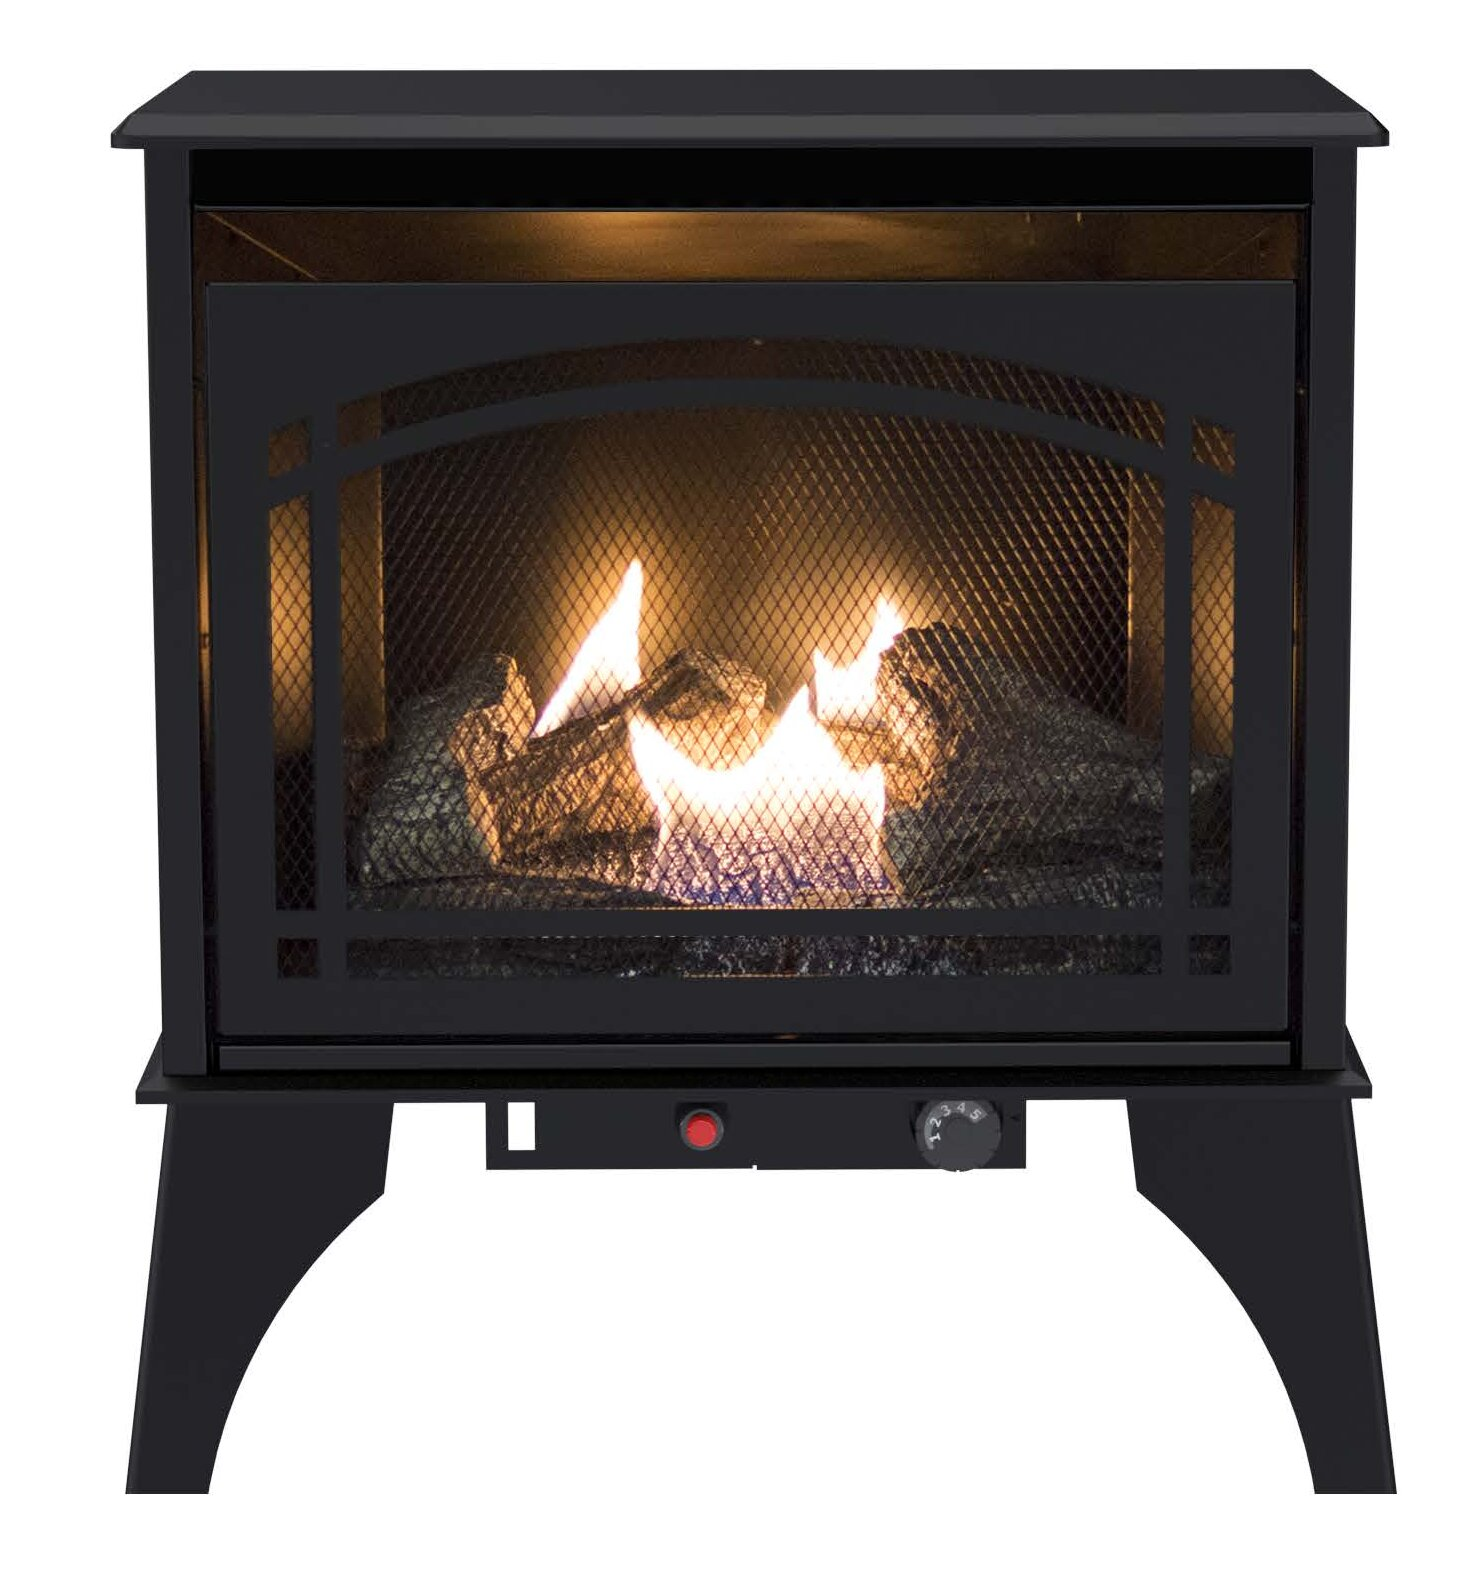 modern coal a logs heater nb post fireplace chillbuster vented coalfire propane fire